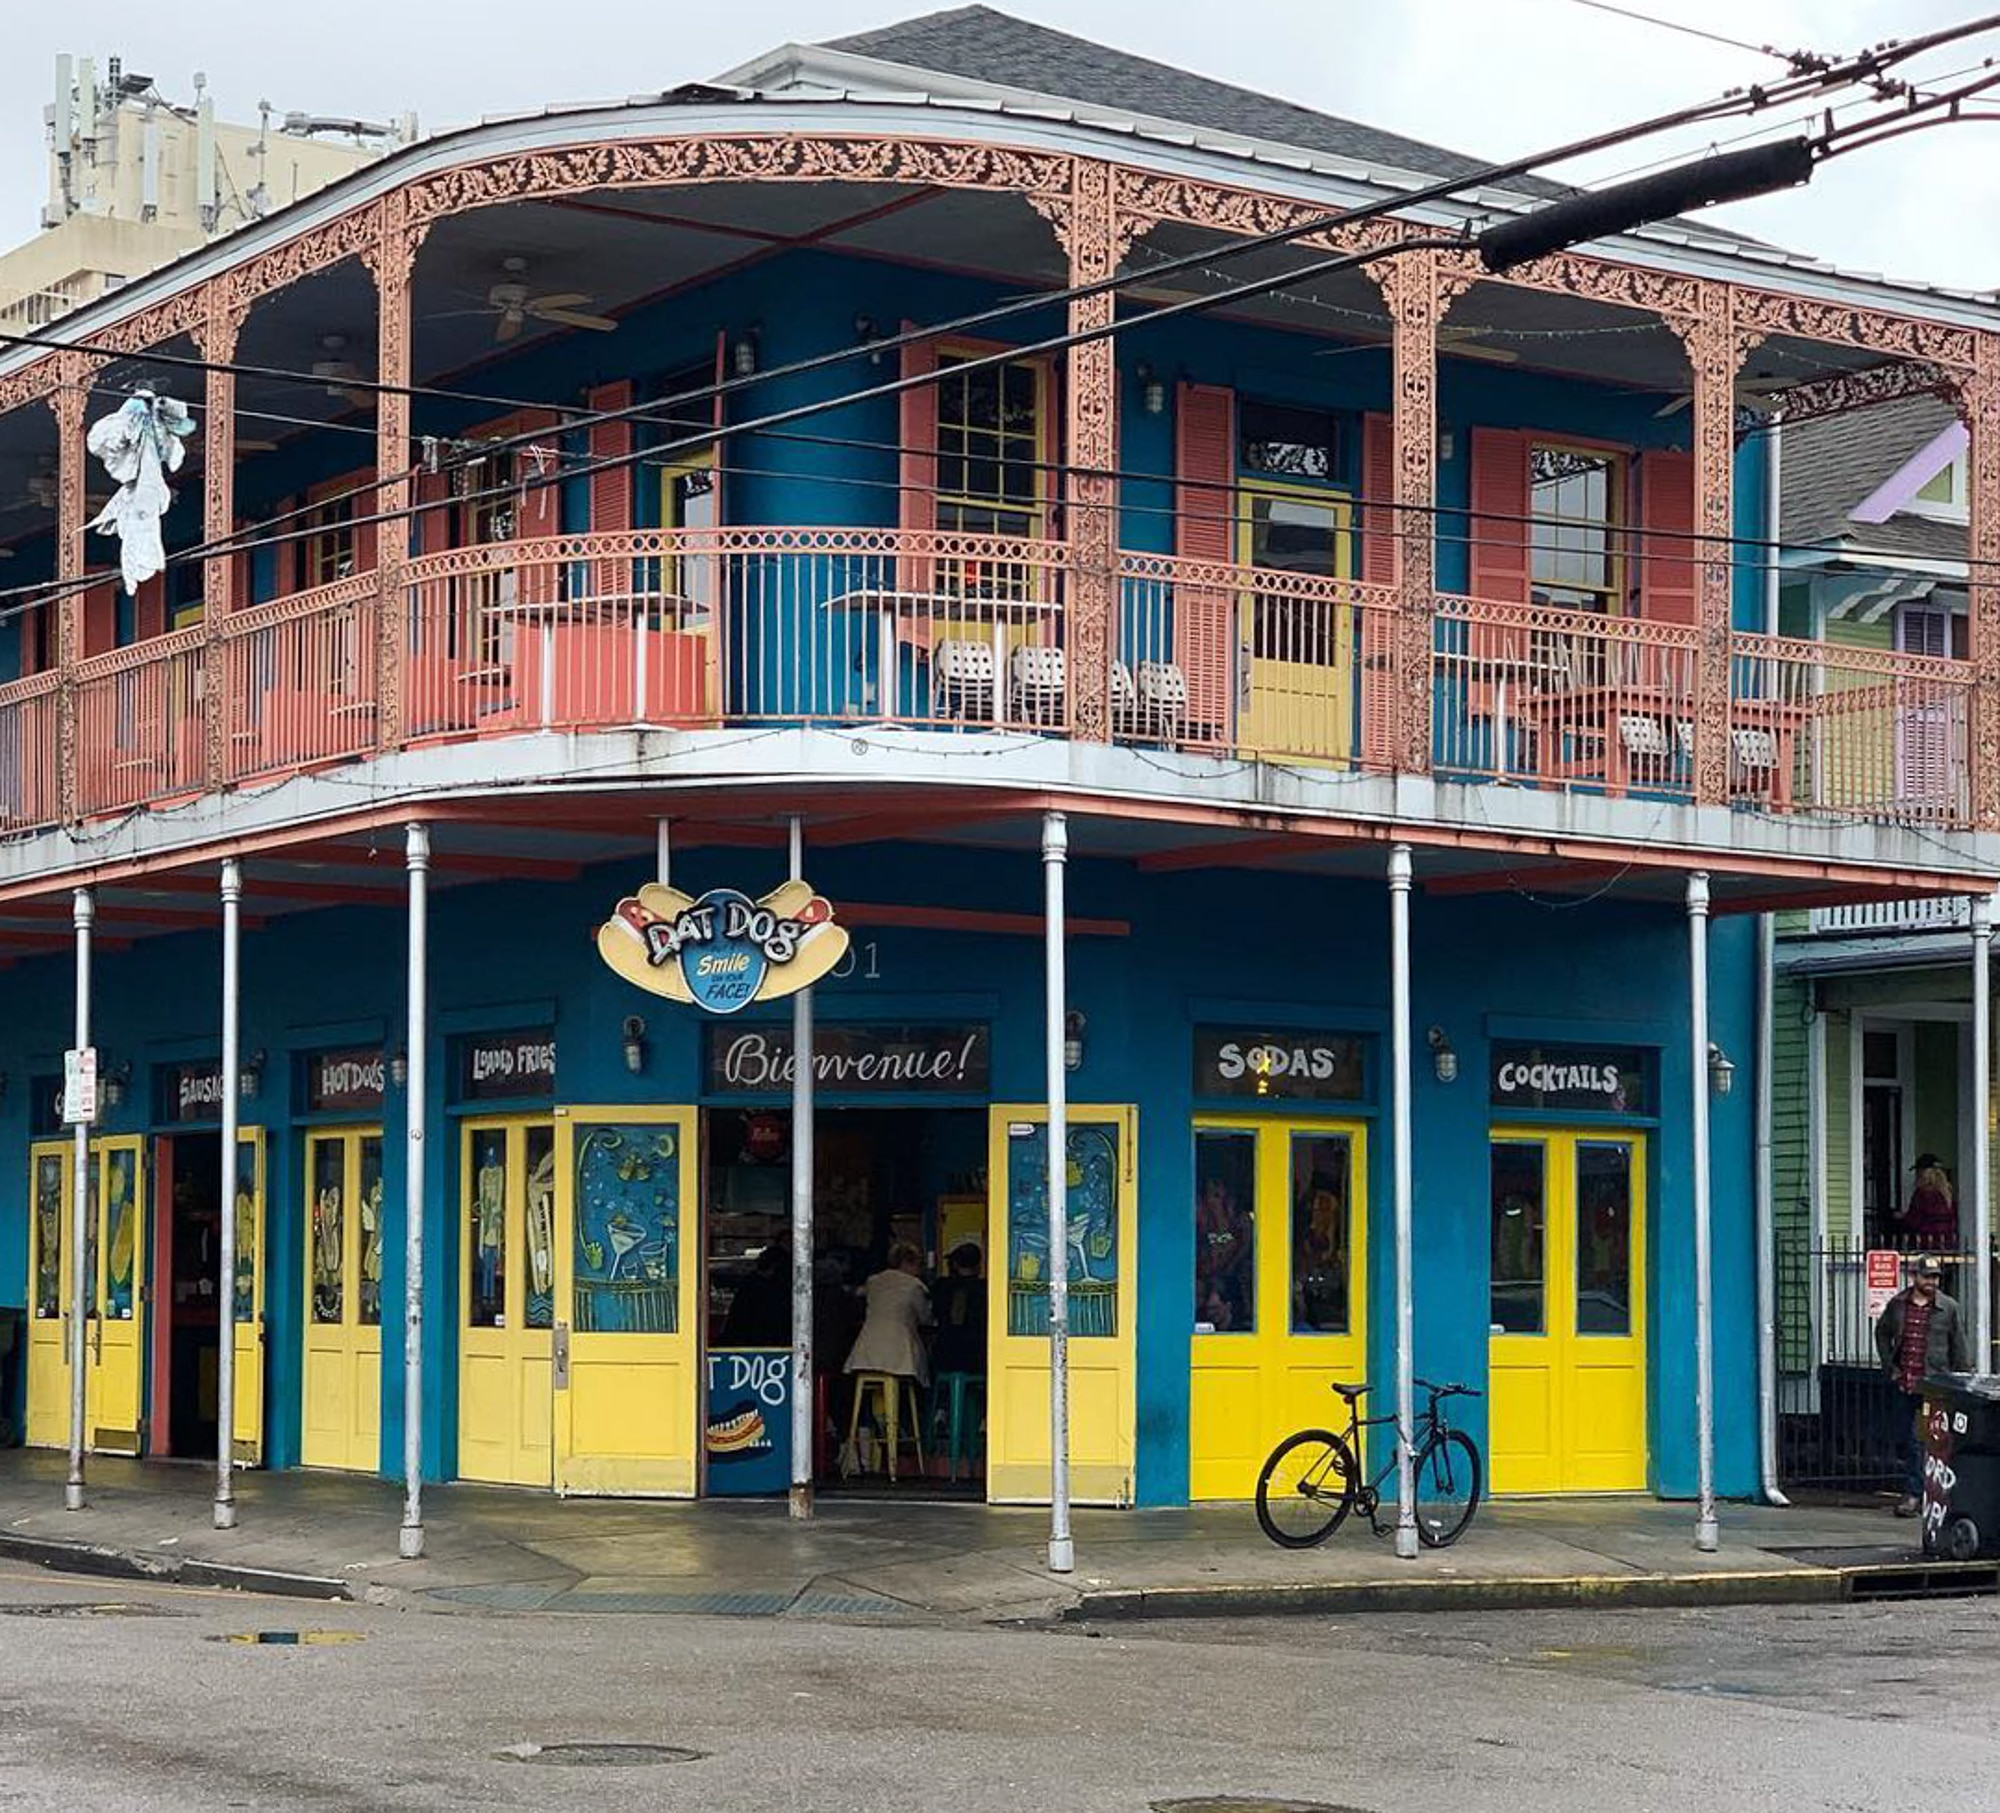 New Orleans building